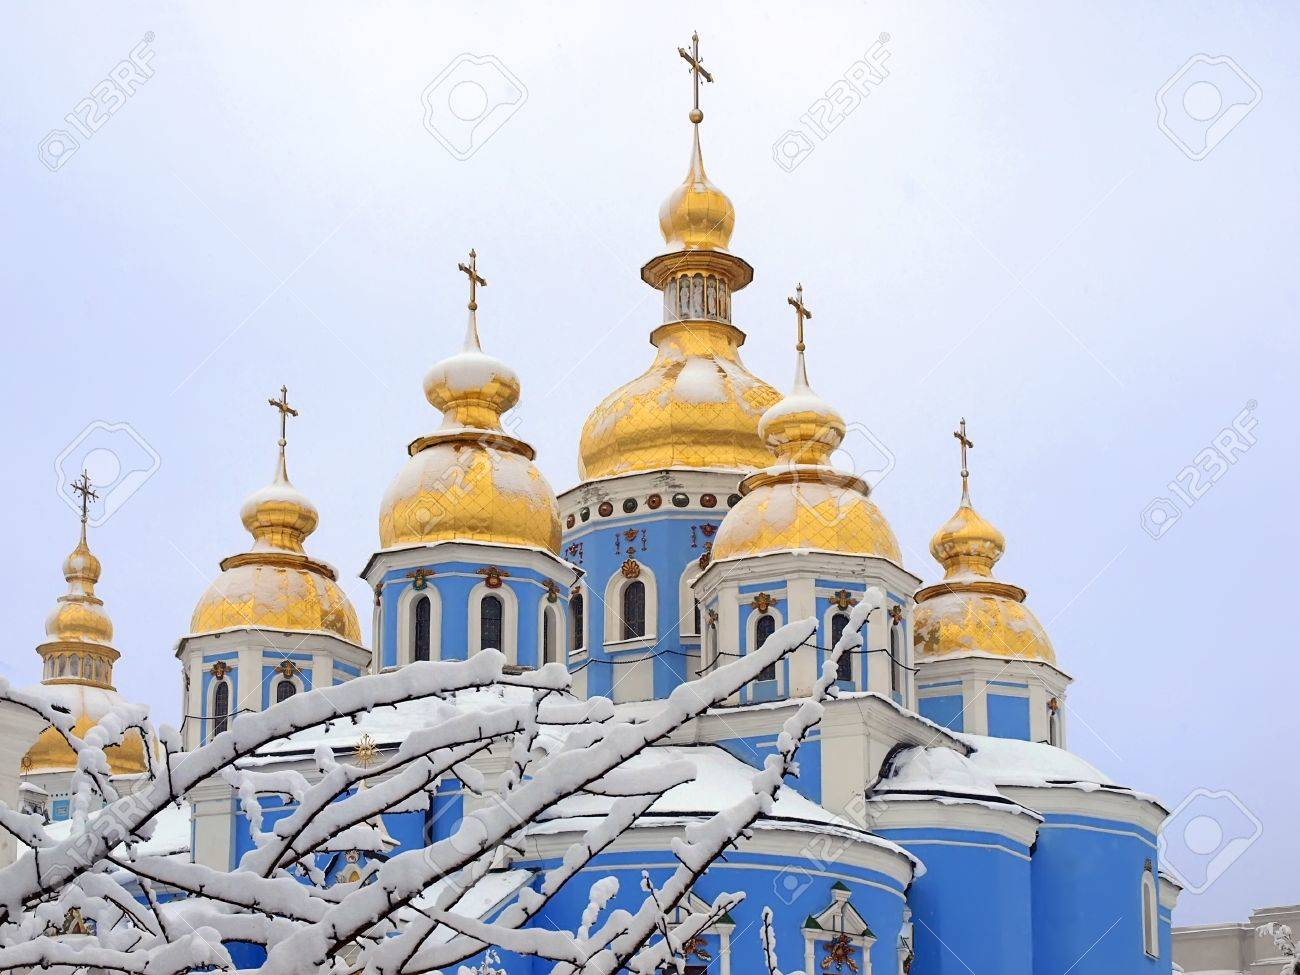 Winter day  St  Michael s Golden Domed Cathedral  On the branches of a tree, on the domes and on the slopes of roofs lies thick layer of snow  Kiev, Ukraine Stock Photo - 16423819